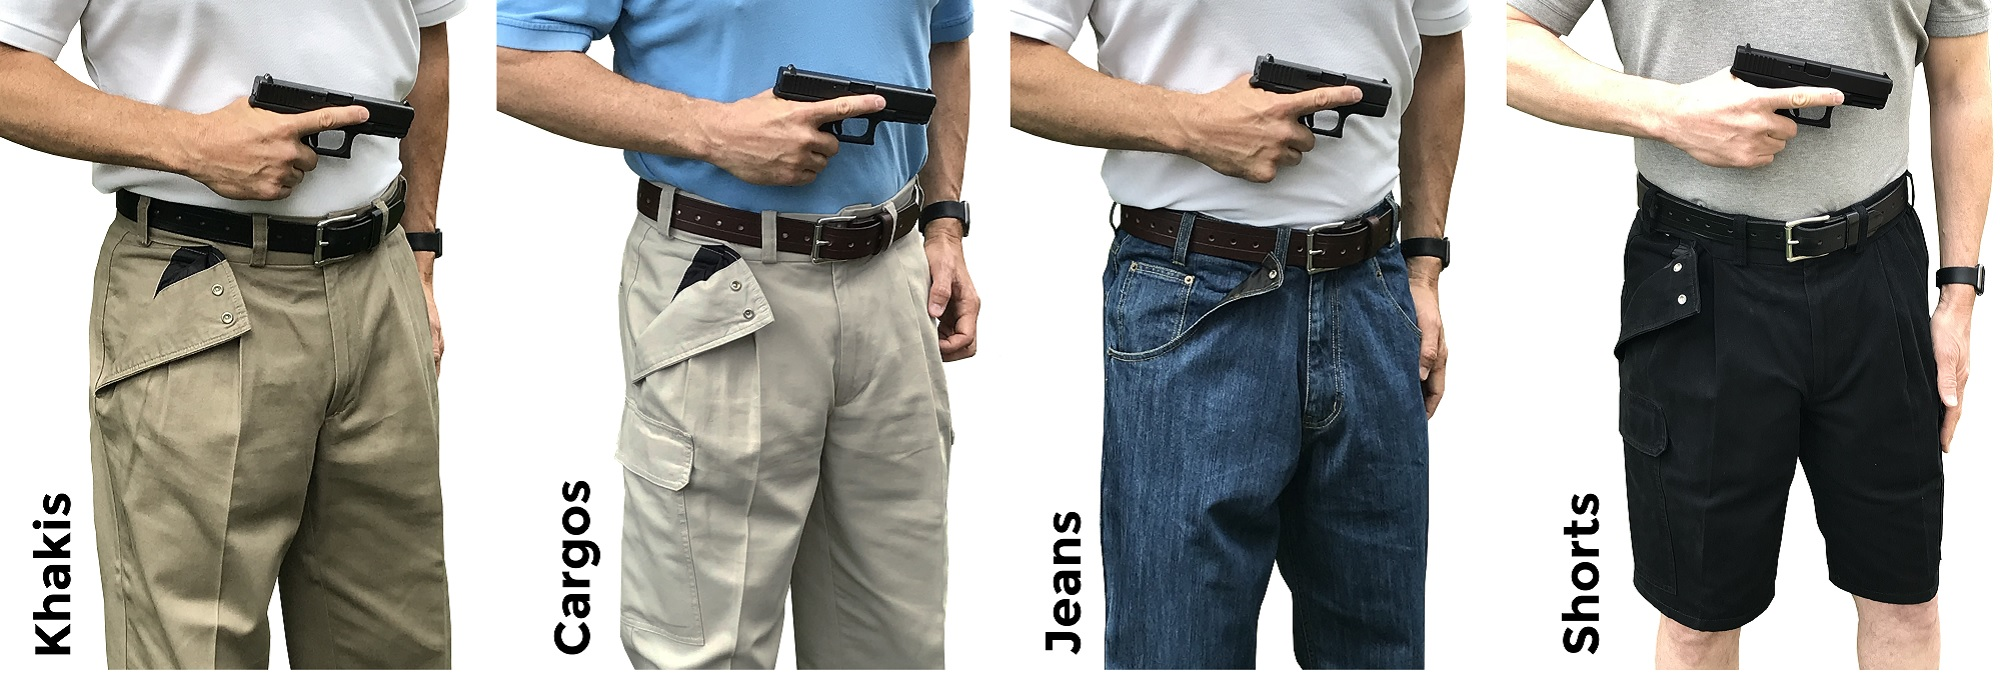 concealed carry clothing for summer concealed carry clothing company